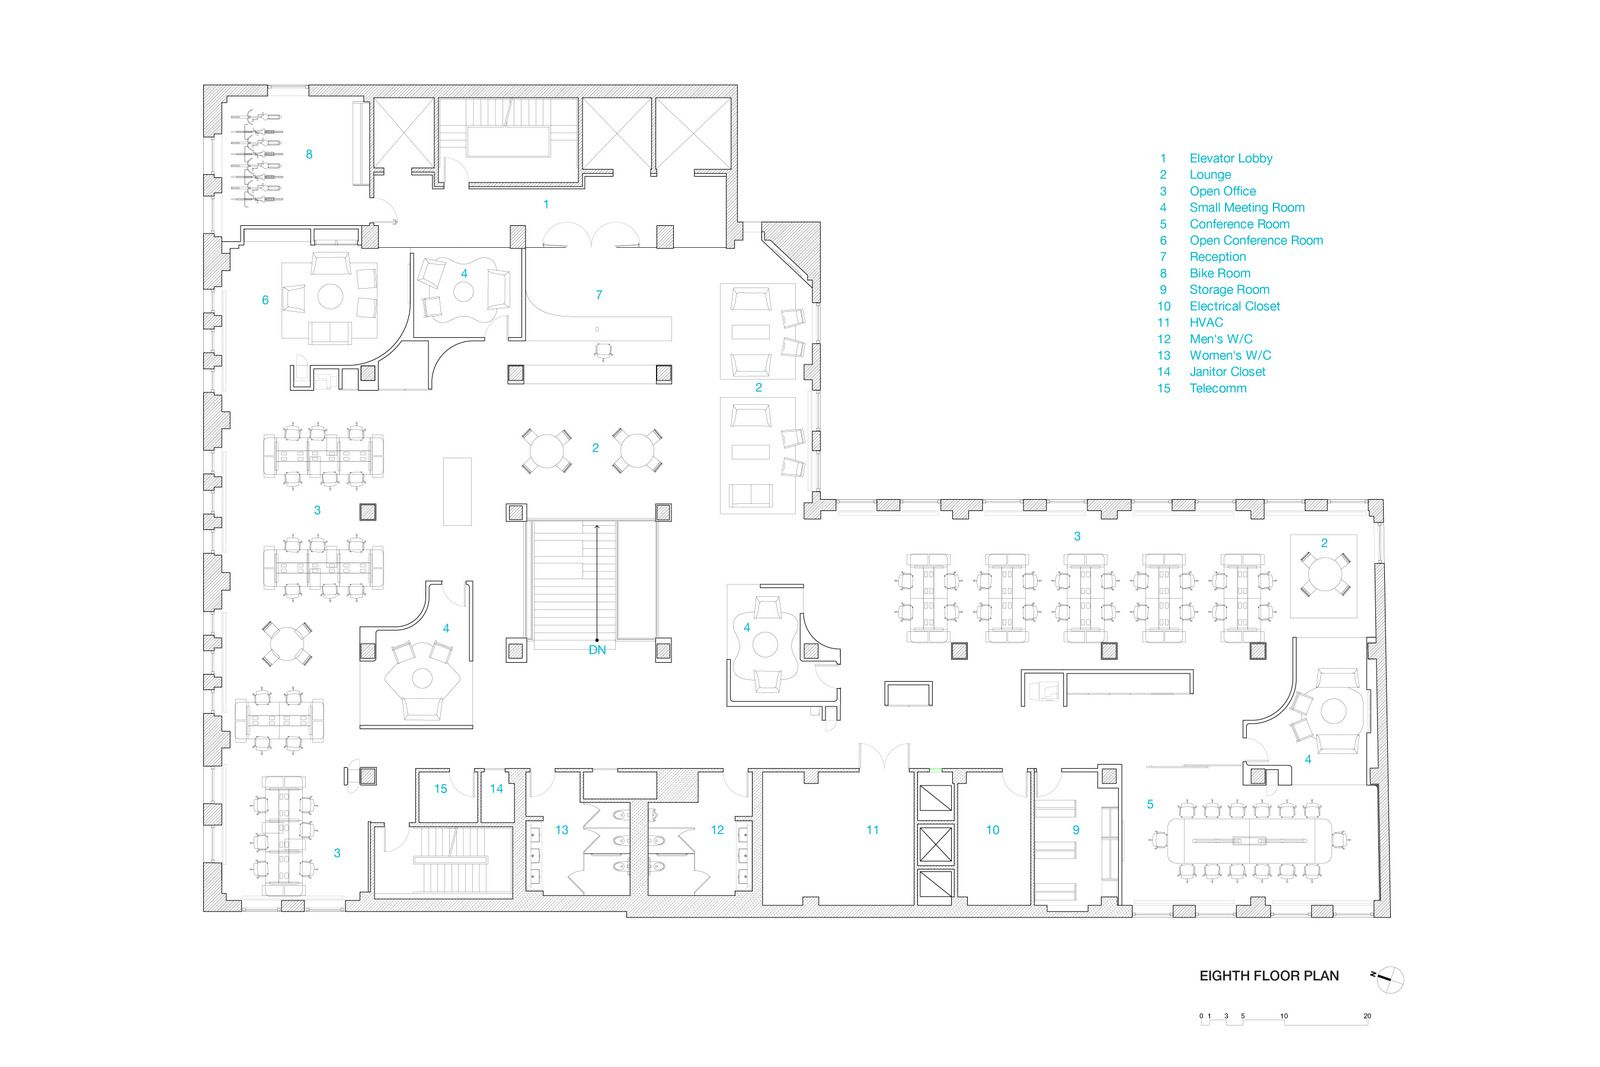 Inaba Red Bull Ny Office 7th Floor Plan 01 Office Snapshots Floor Plans Office Floor Plan Office Space Planning